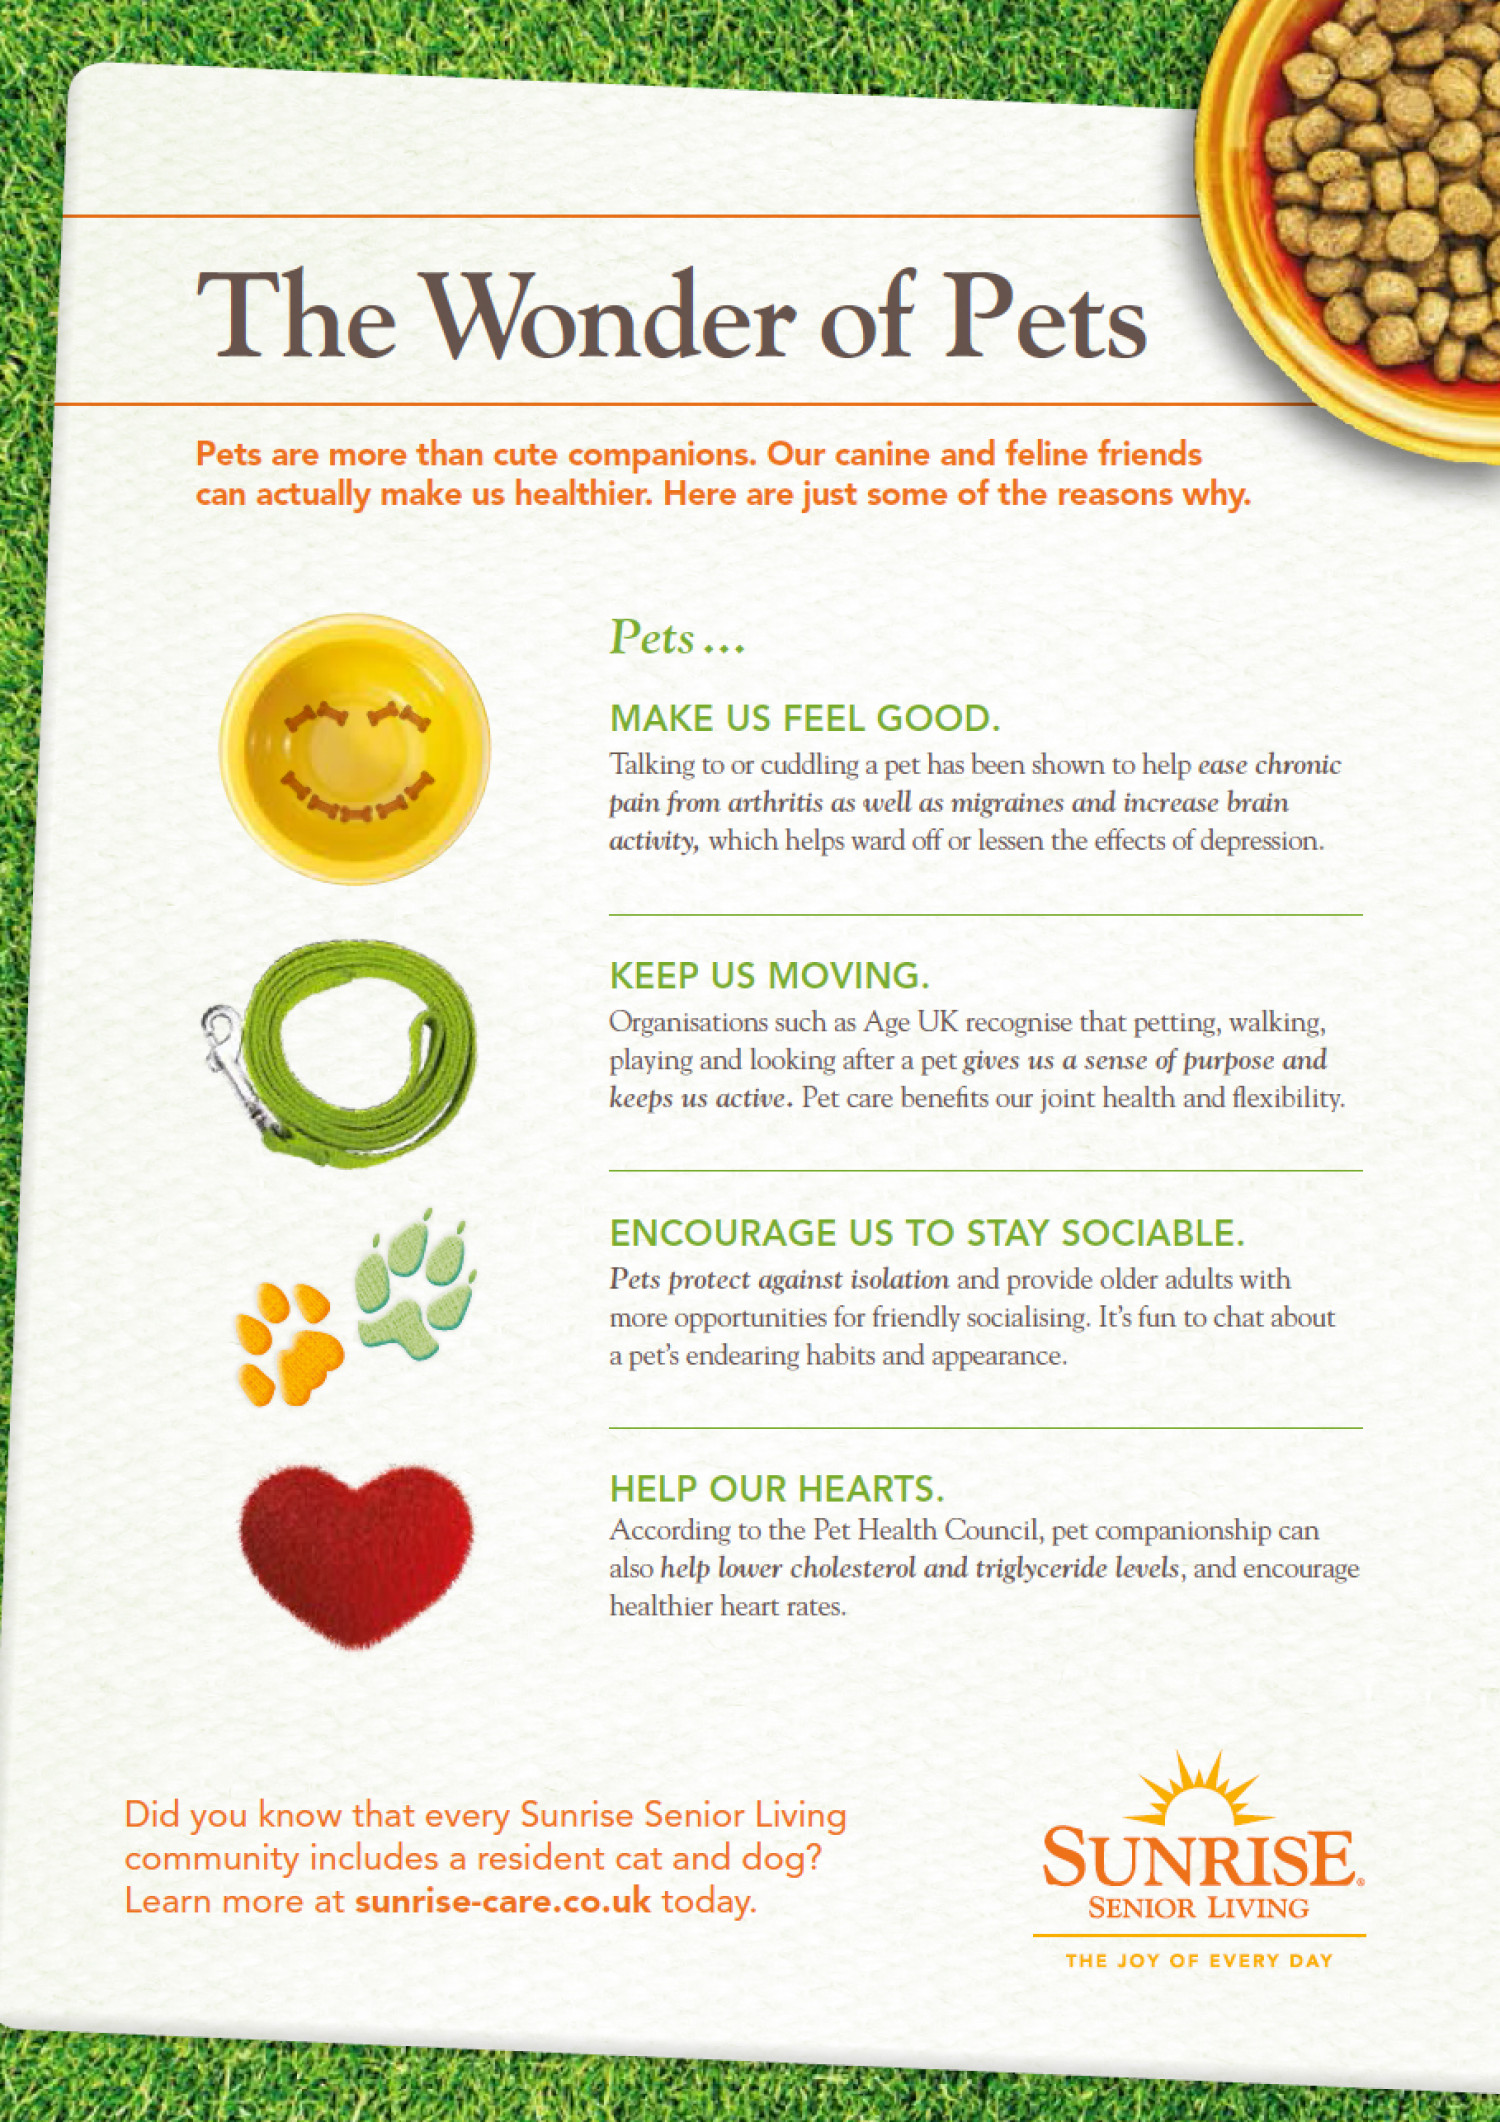 The Wonder of Pets Infographic